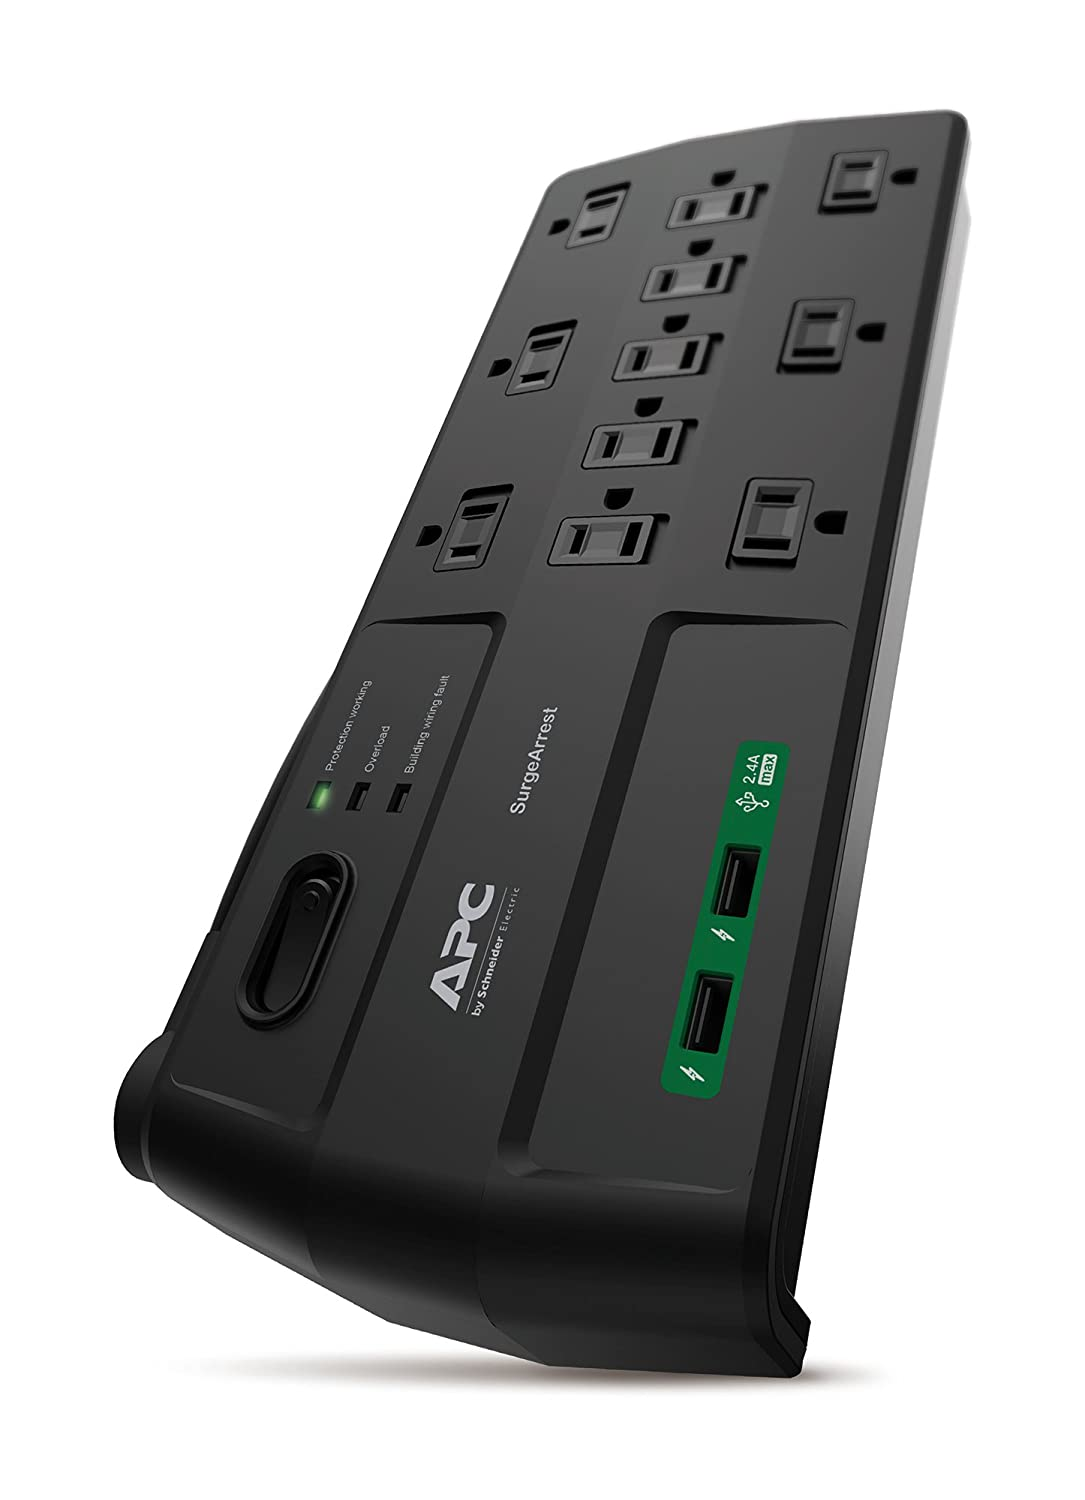 Best Surge Protector 2020.Top 10 Best Computer Surge Protectors Reviews 2019 2020 On